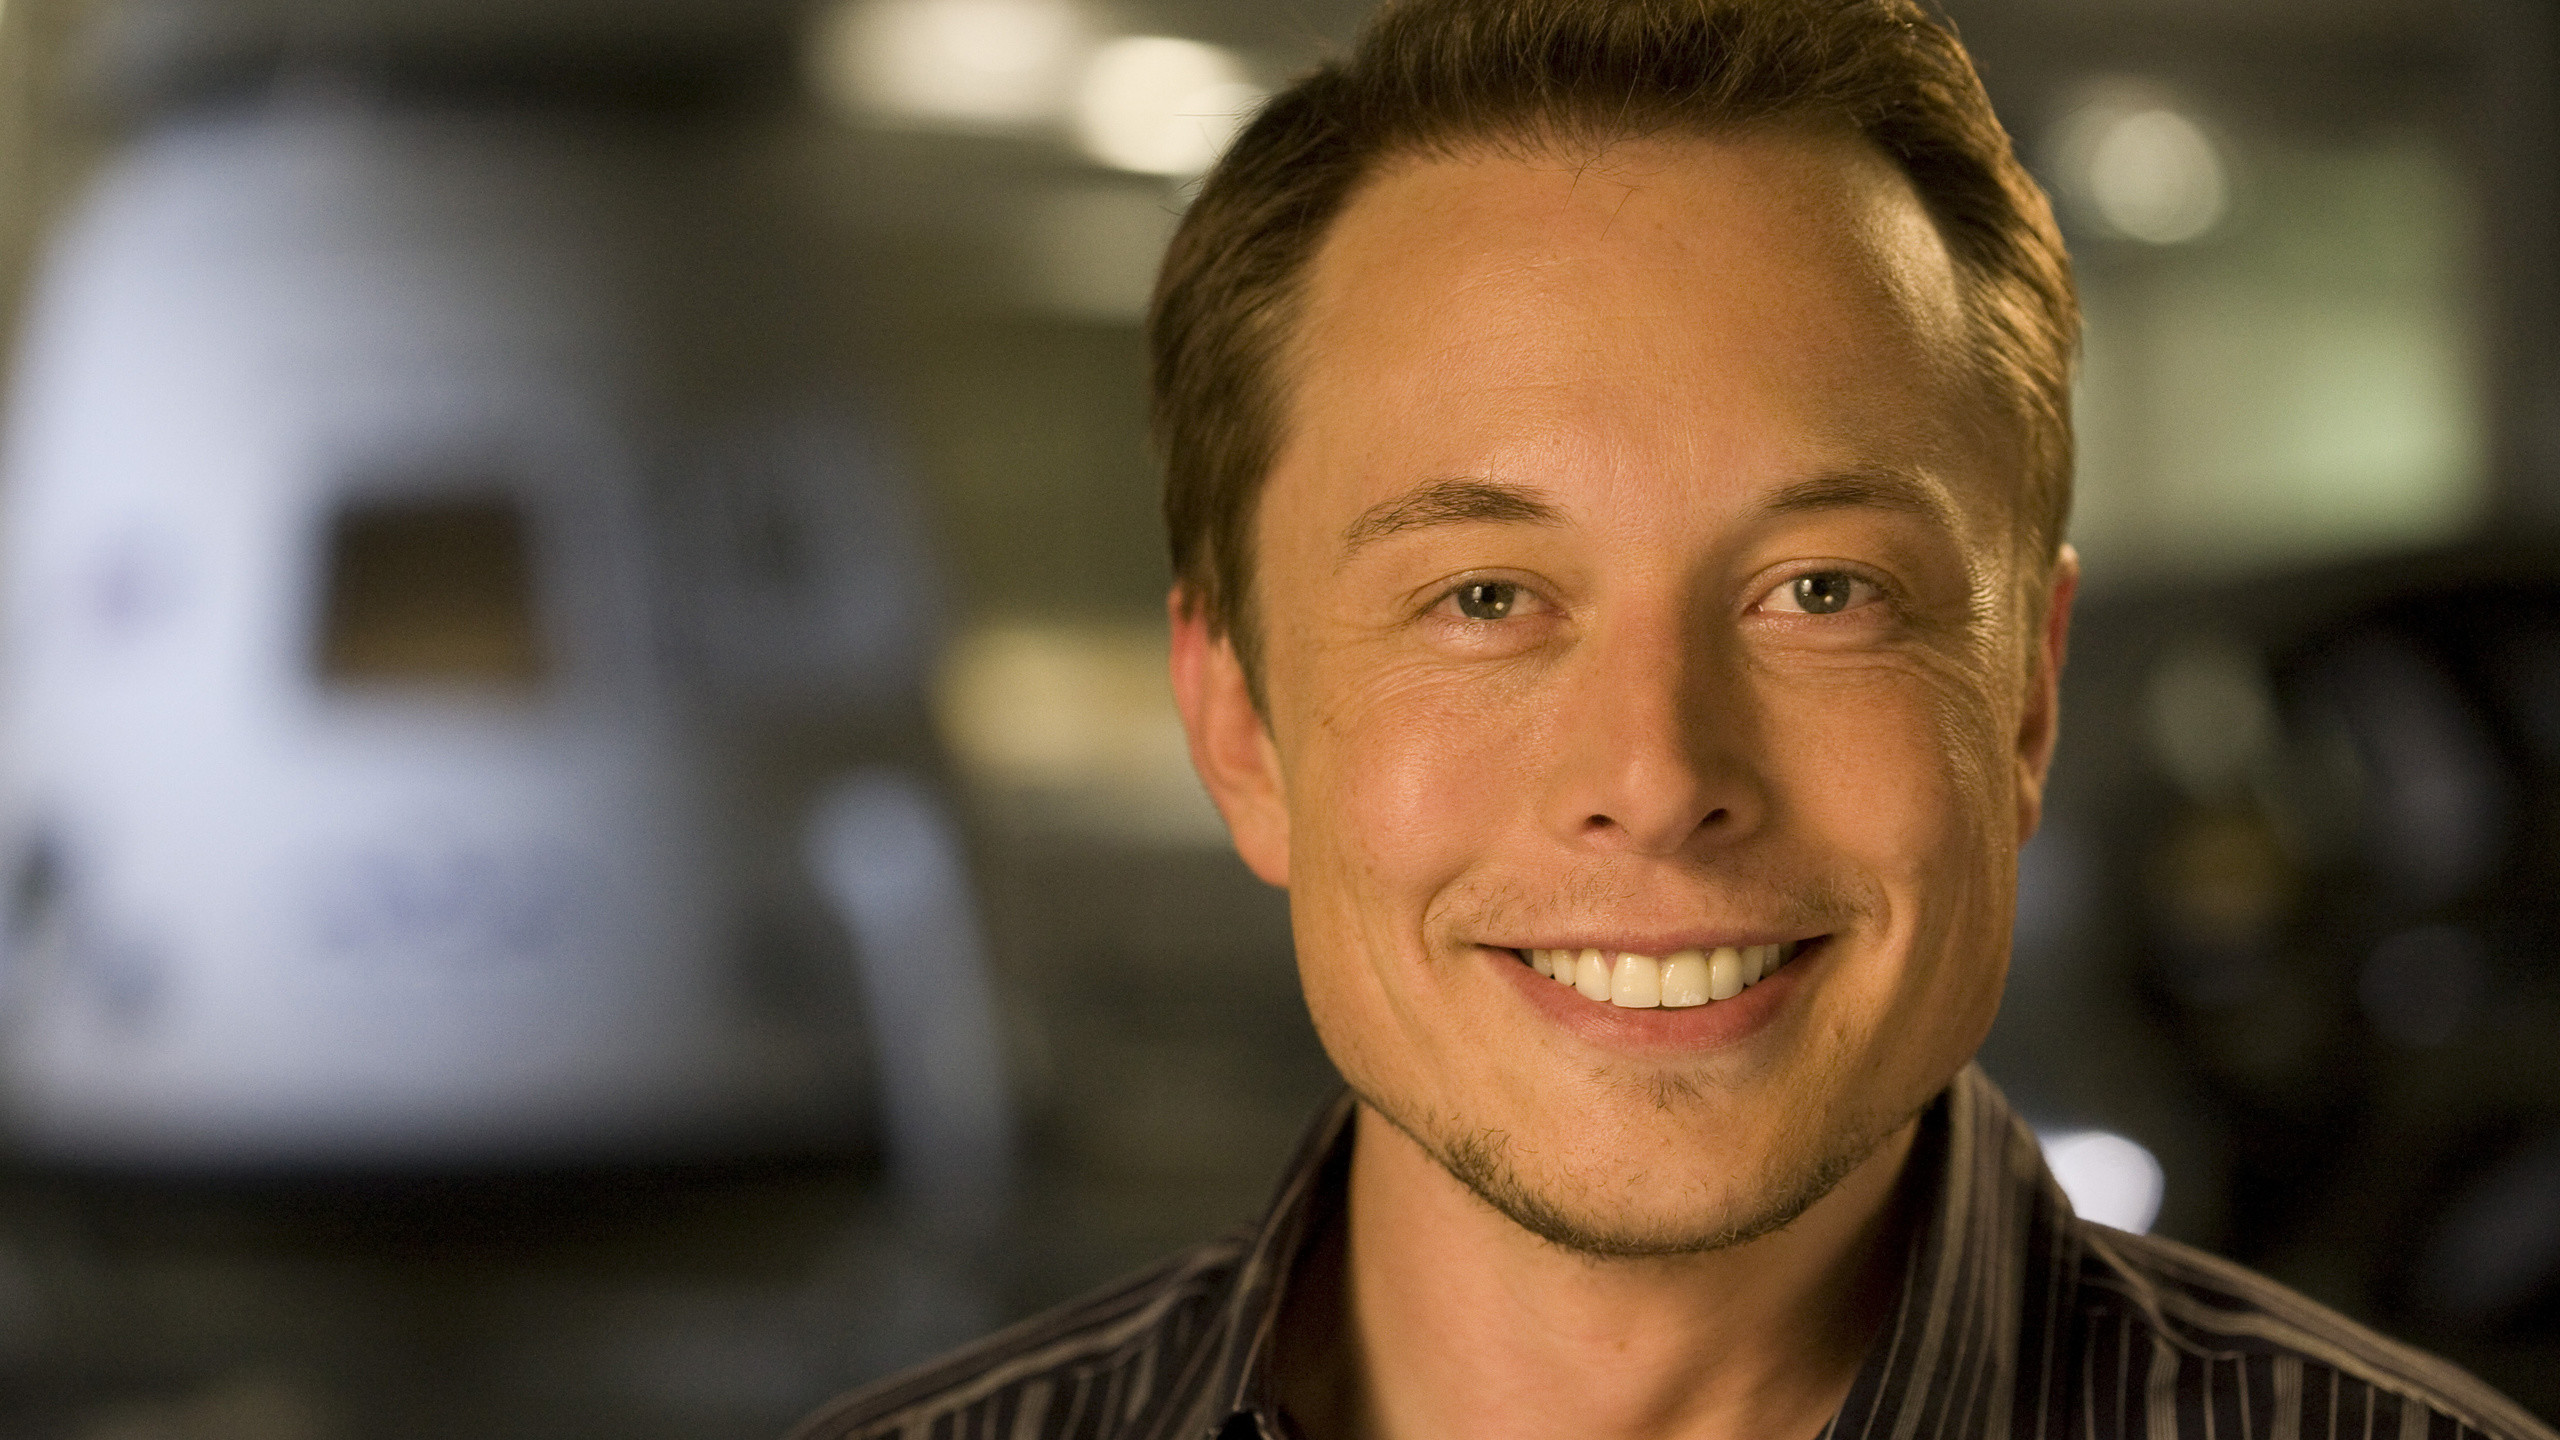 Elon Musk, Spacex, Ceo Of Spacex, Photos Of Elon Musk, Elon Musk